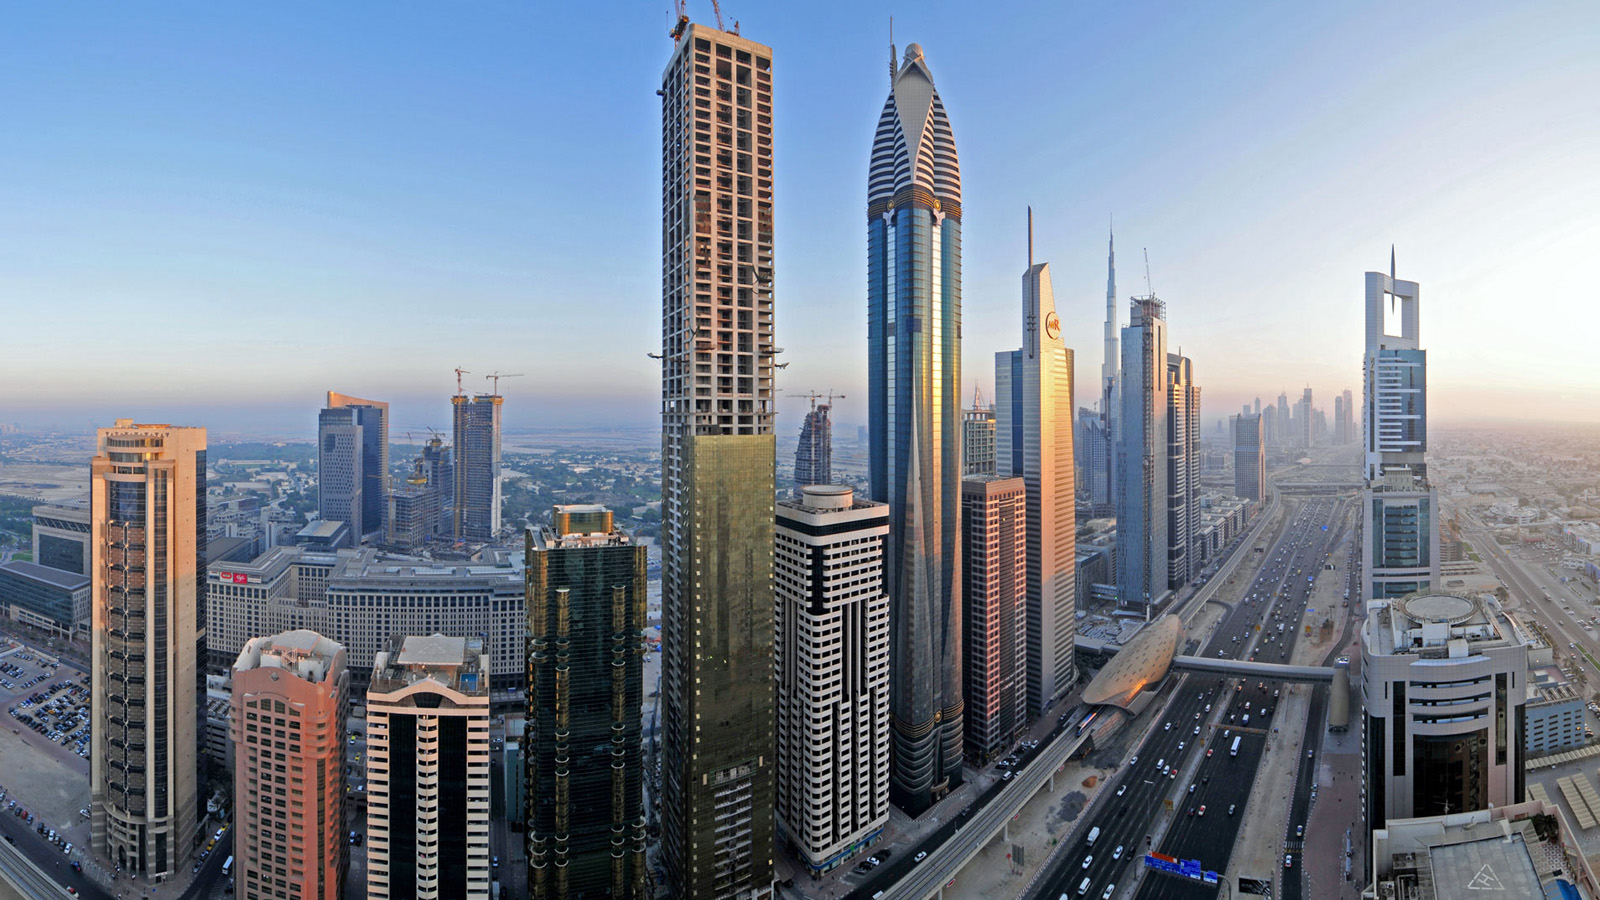 Dubai Skyscraper Street wallpaper